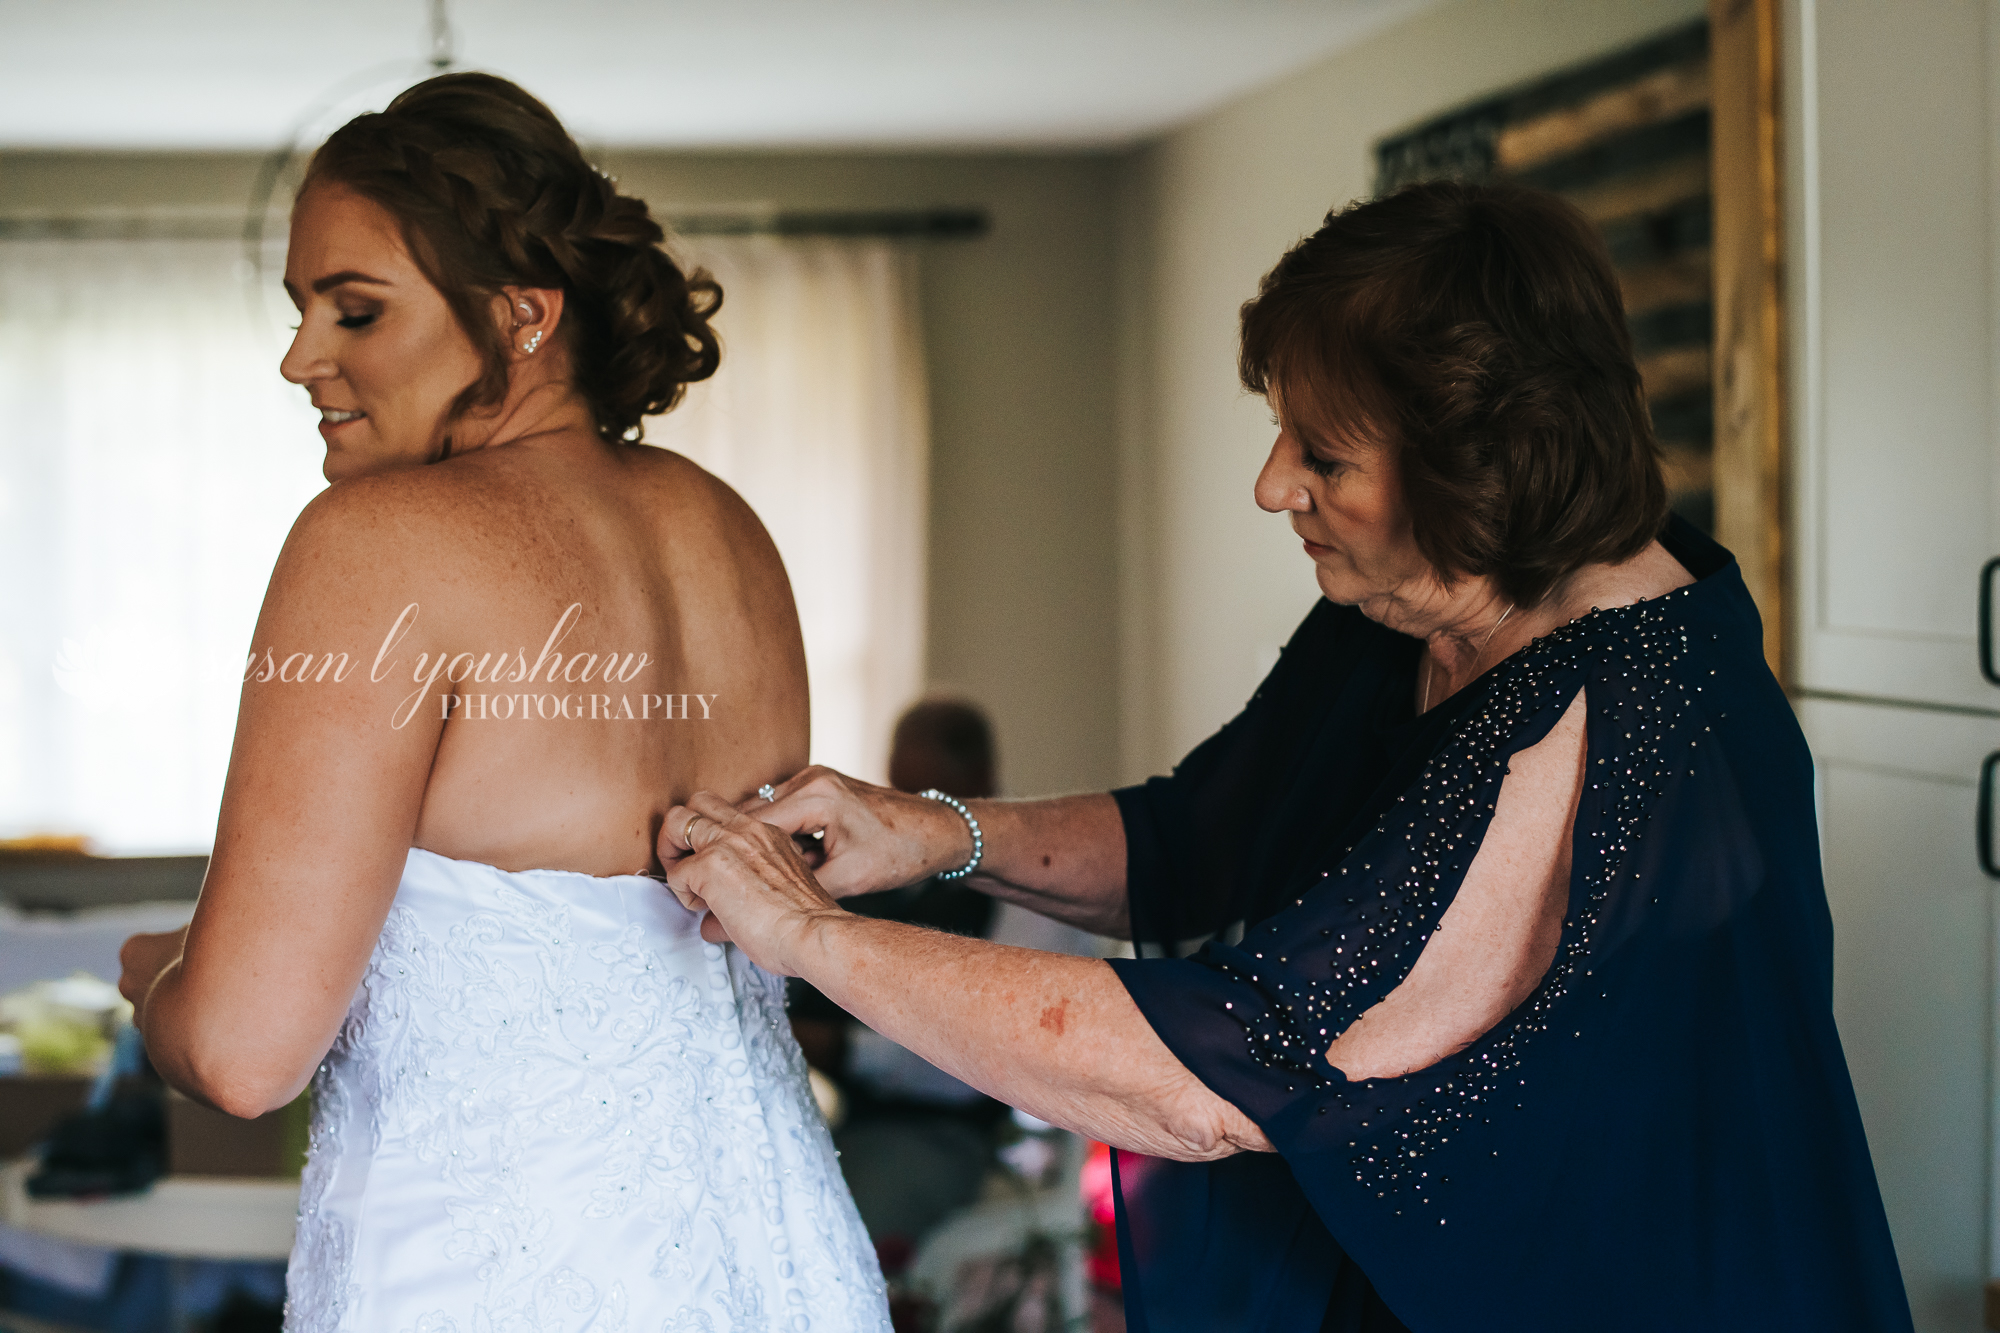 Erin and Jason Wedding Photos 07-06-2019 SLY Photography-23.jpg